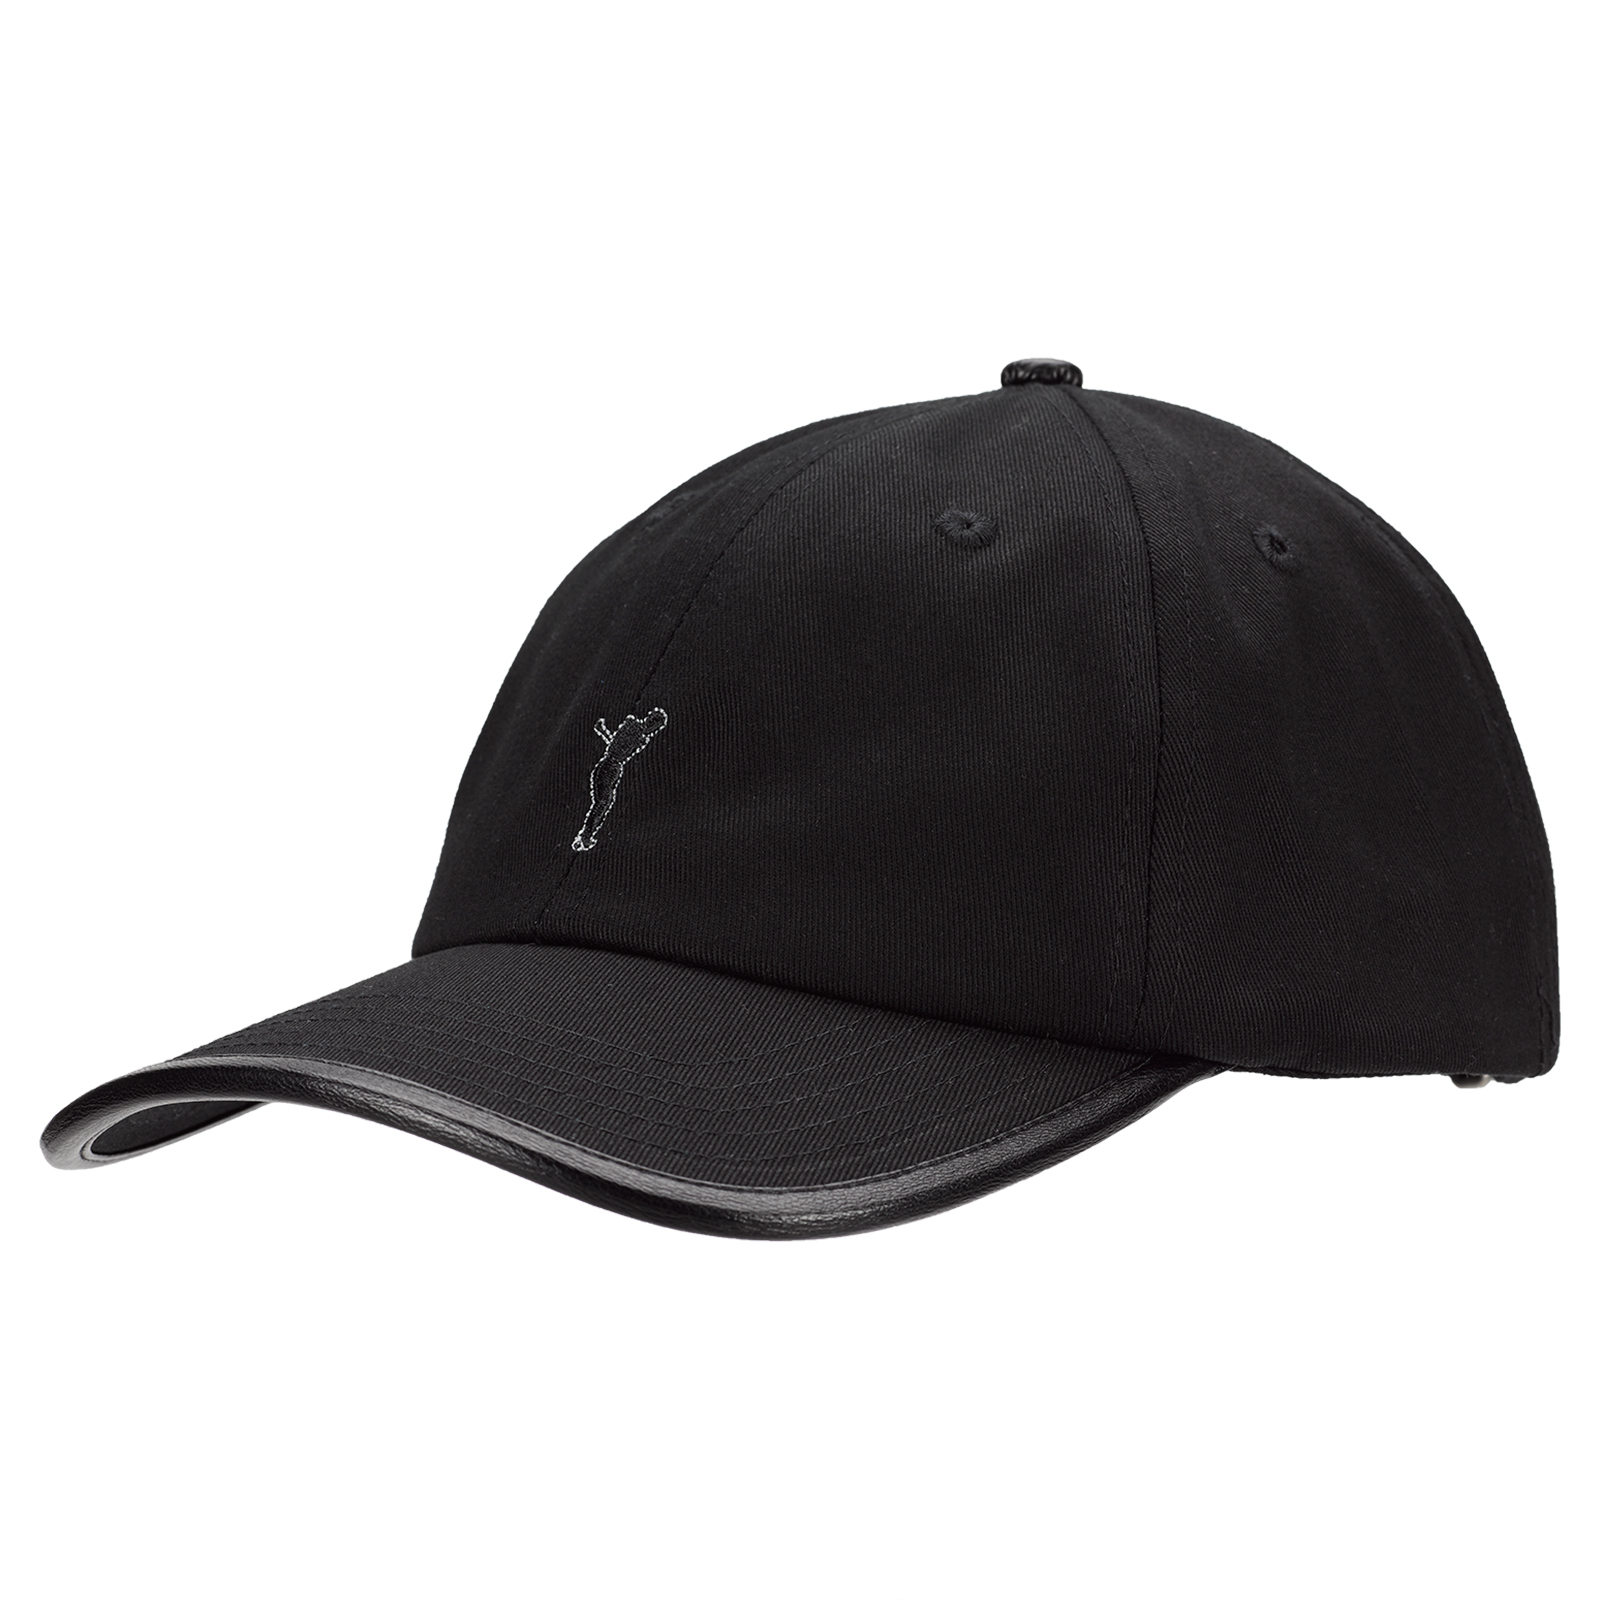 High Tech Performance Herren Baumwoll Golfcap Onesize